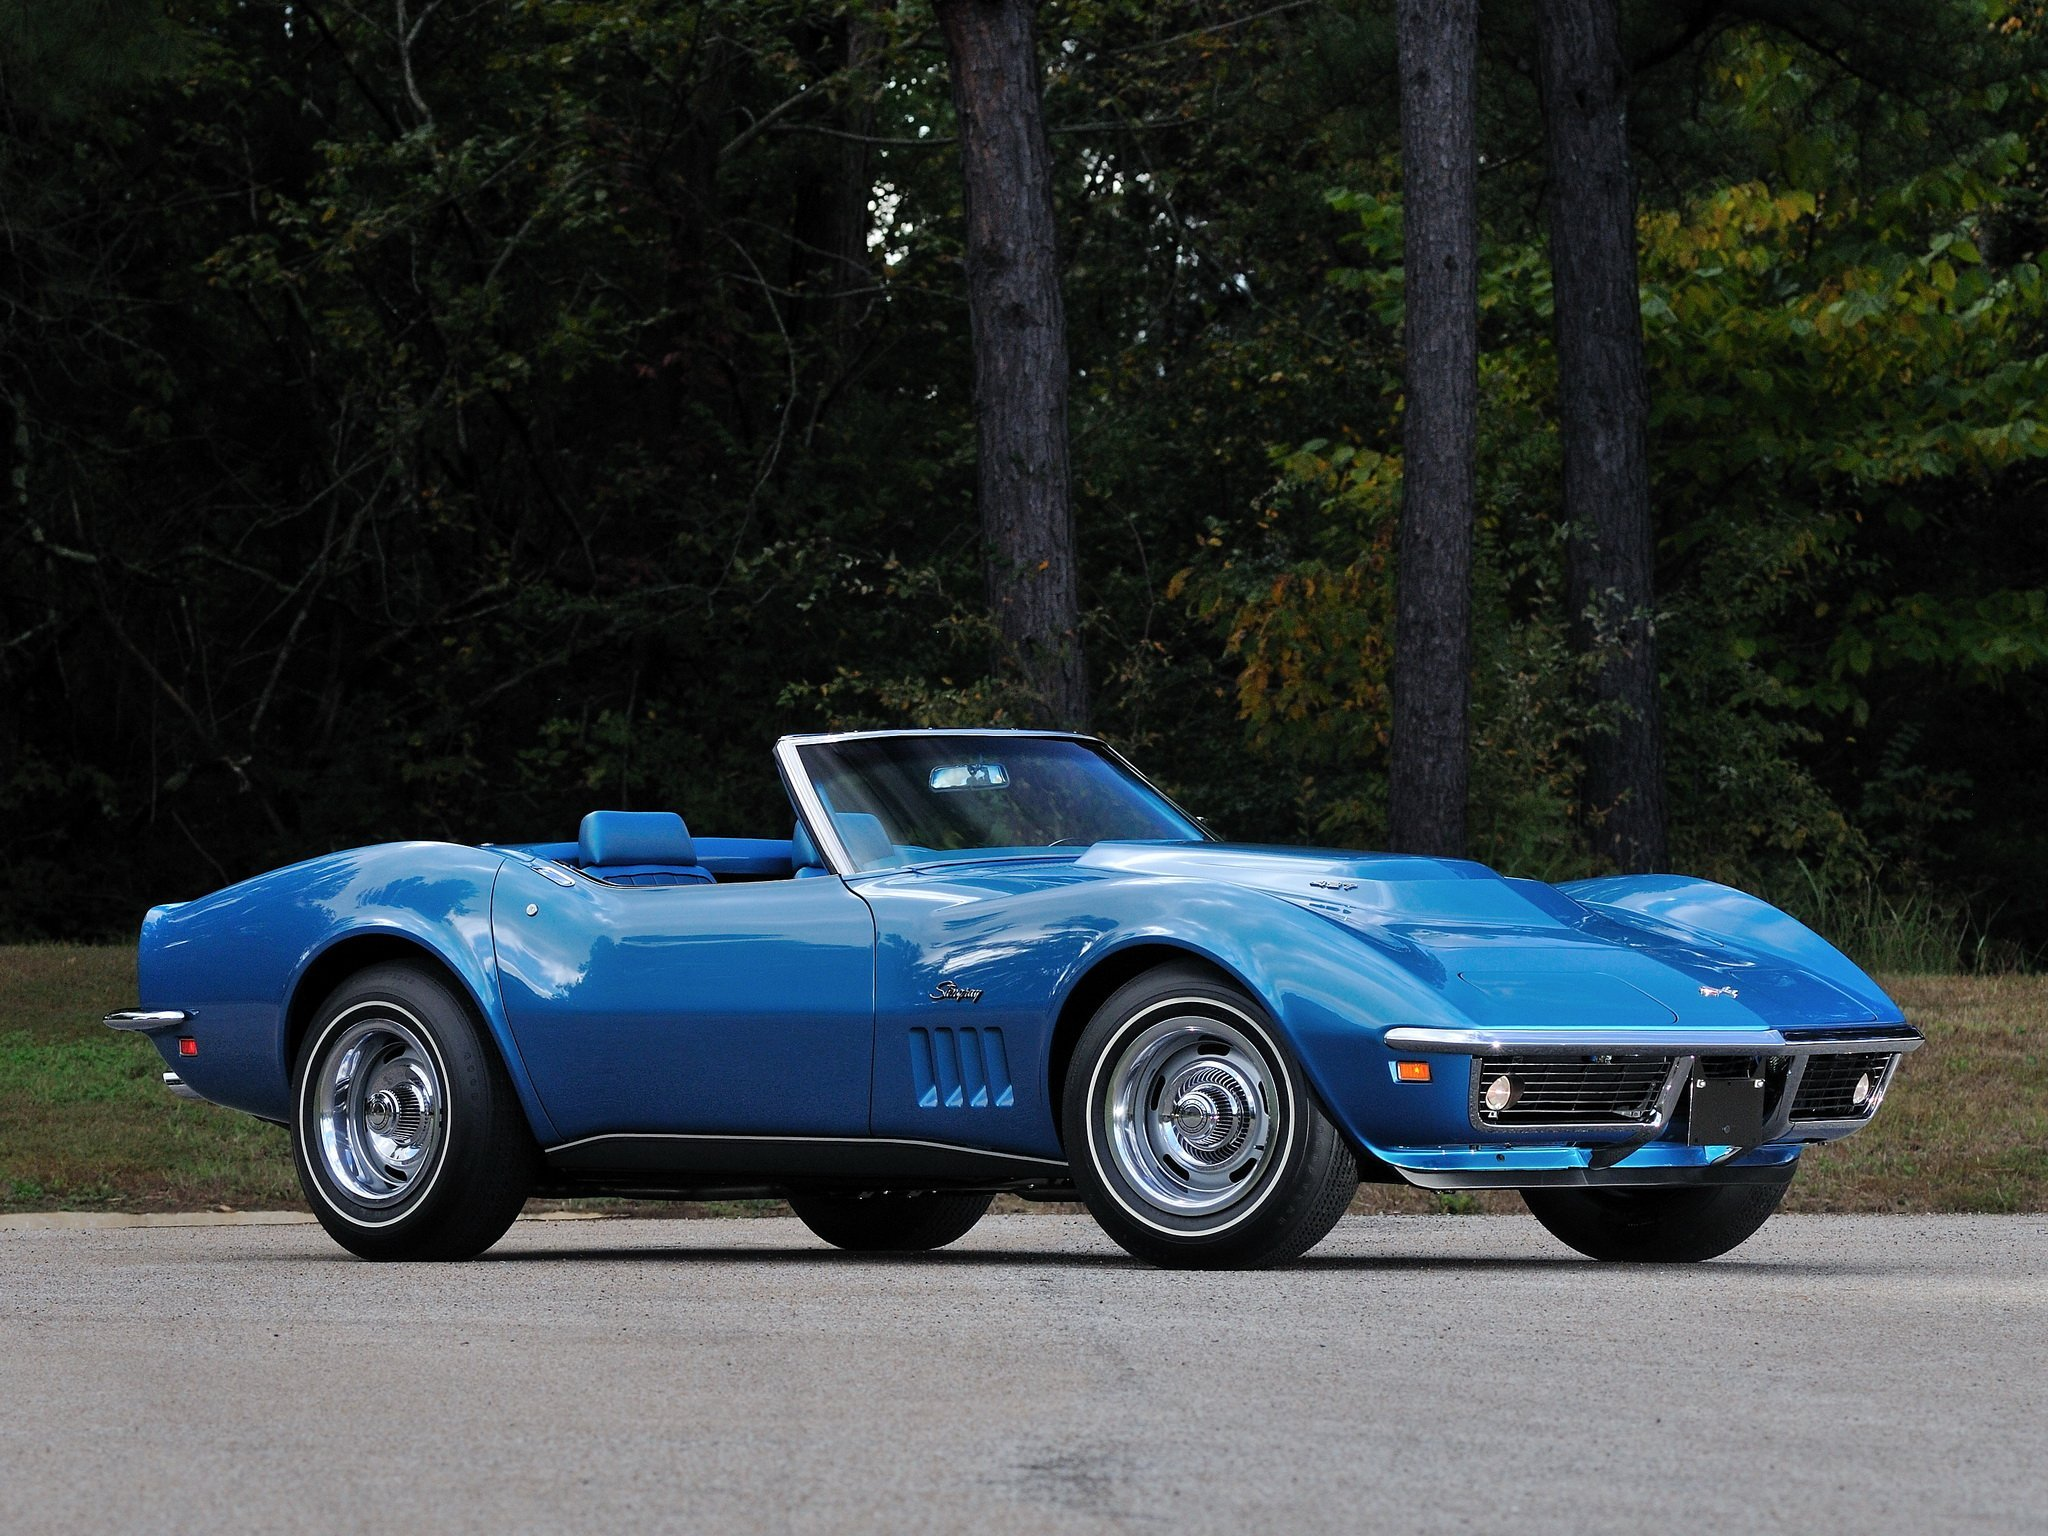 Corvette C3 Stingray >> 1969 Corvette Stingray Wallpaper - WallpaperSafari